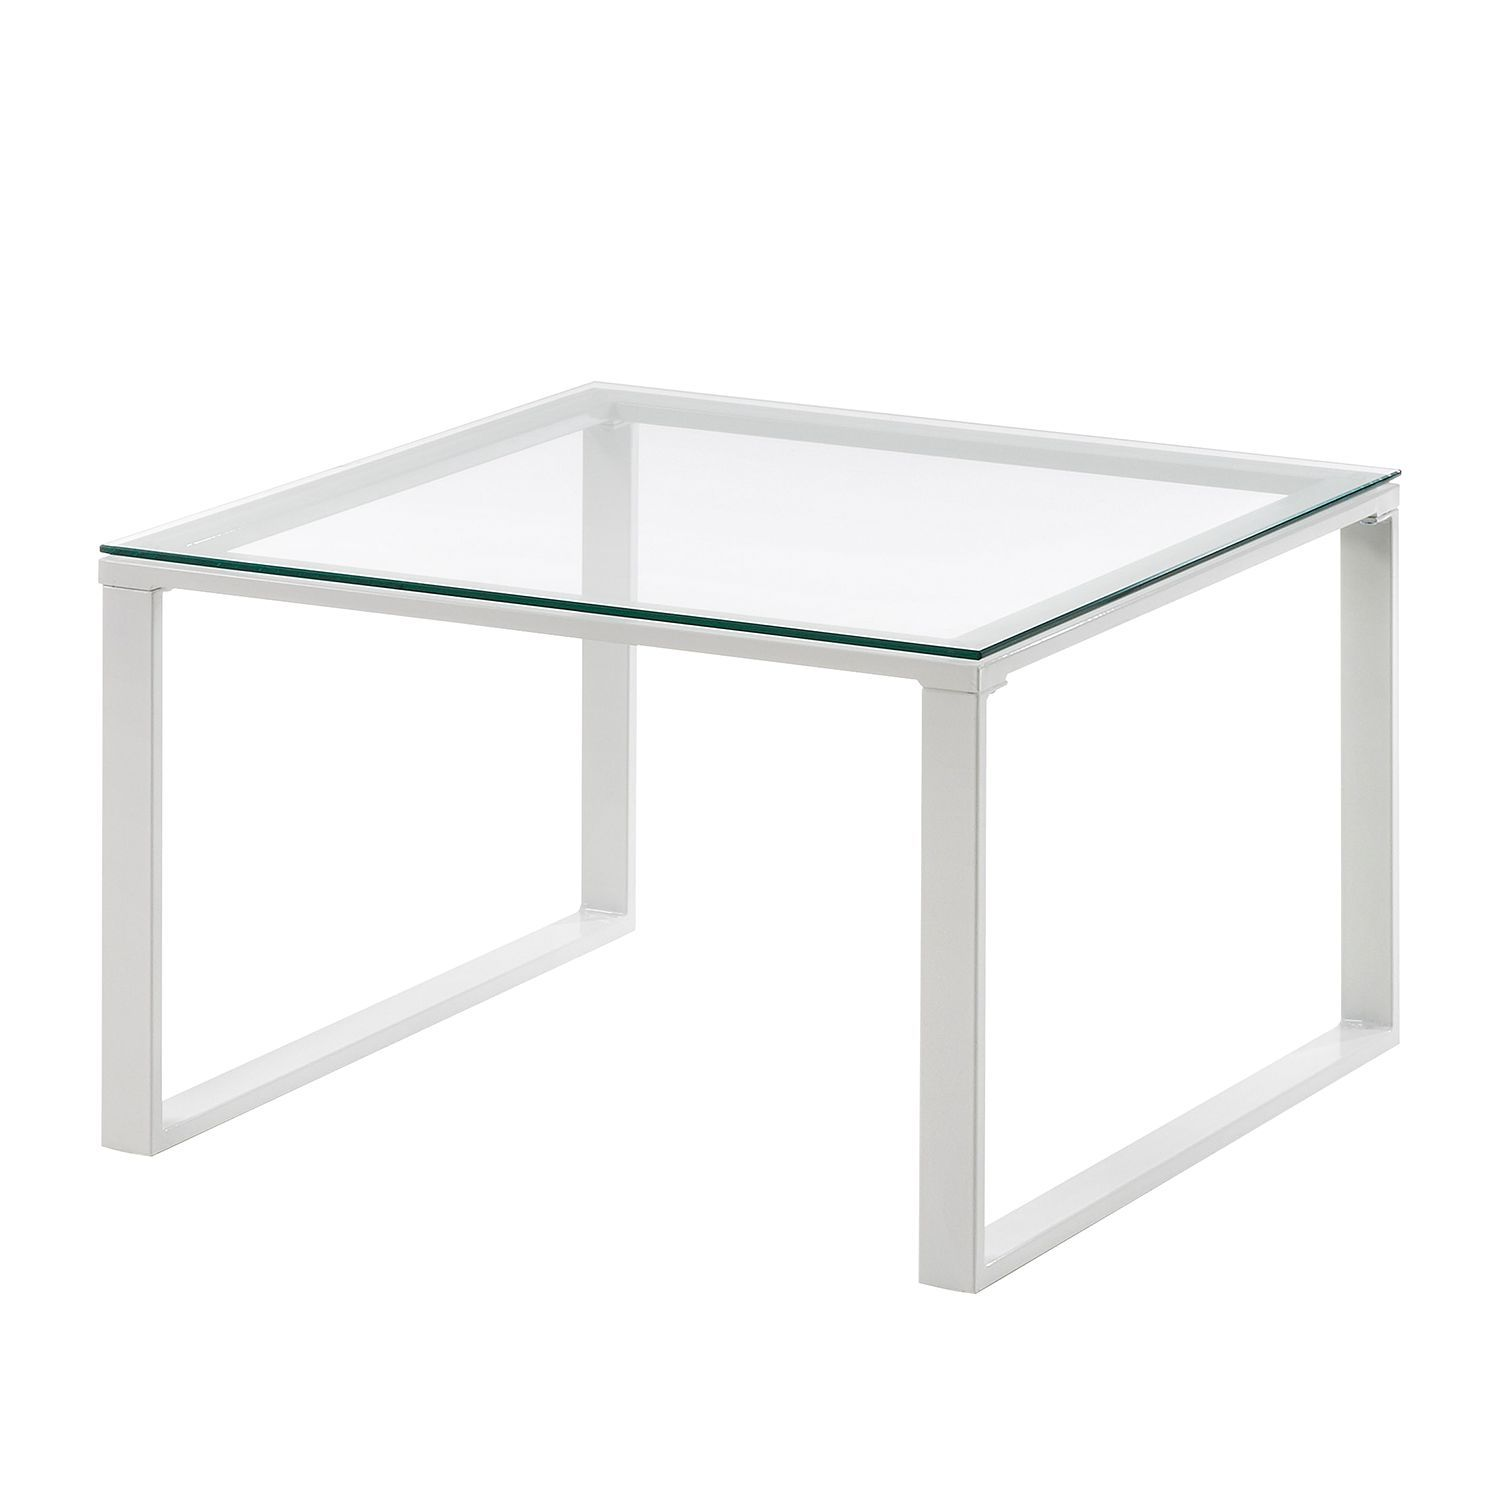 Couchtisch Brora Pin By Ladendirekt On Tische Glass Table Table Table